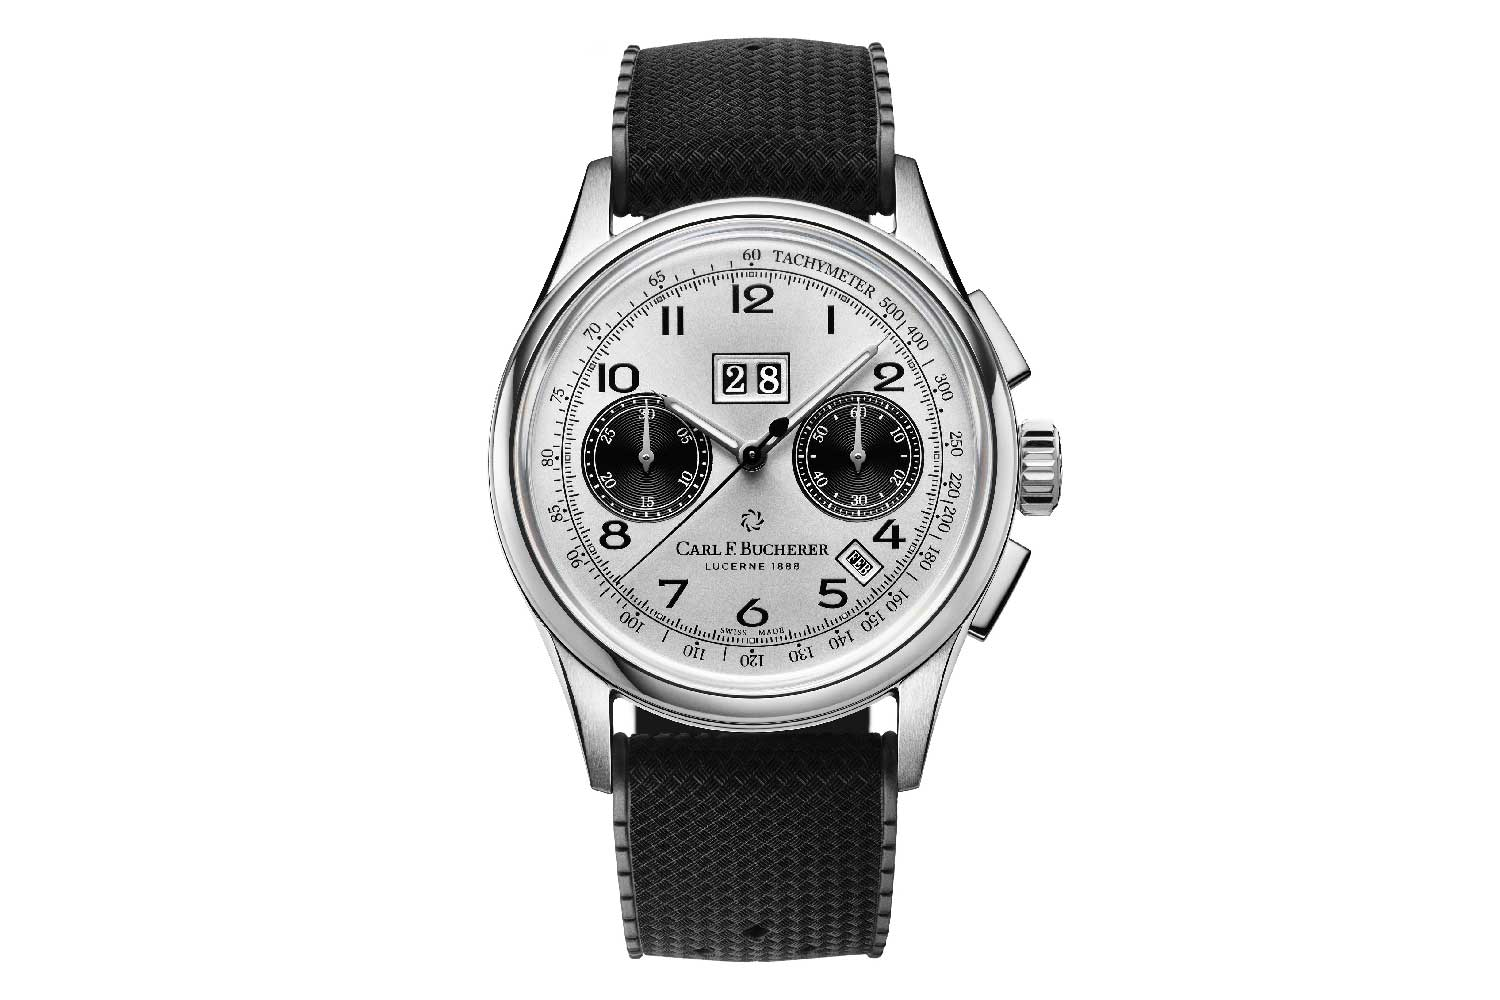 At Watches & Wonders 2021, Carl F. Bucherer introduced a new contrasting version of its popular Heritage BiCompax Annual, this time in steel with a silver dial and black-coloured subdials.